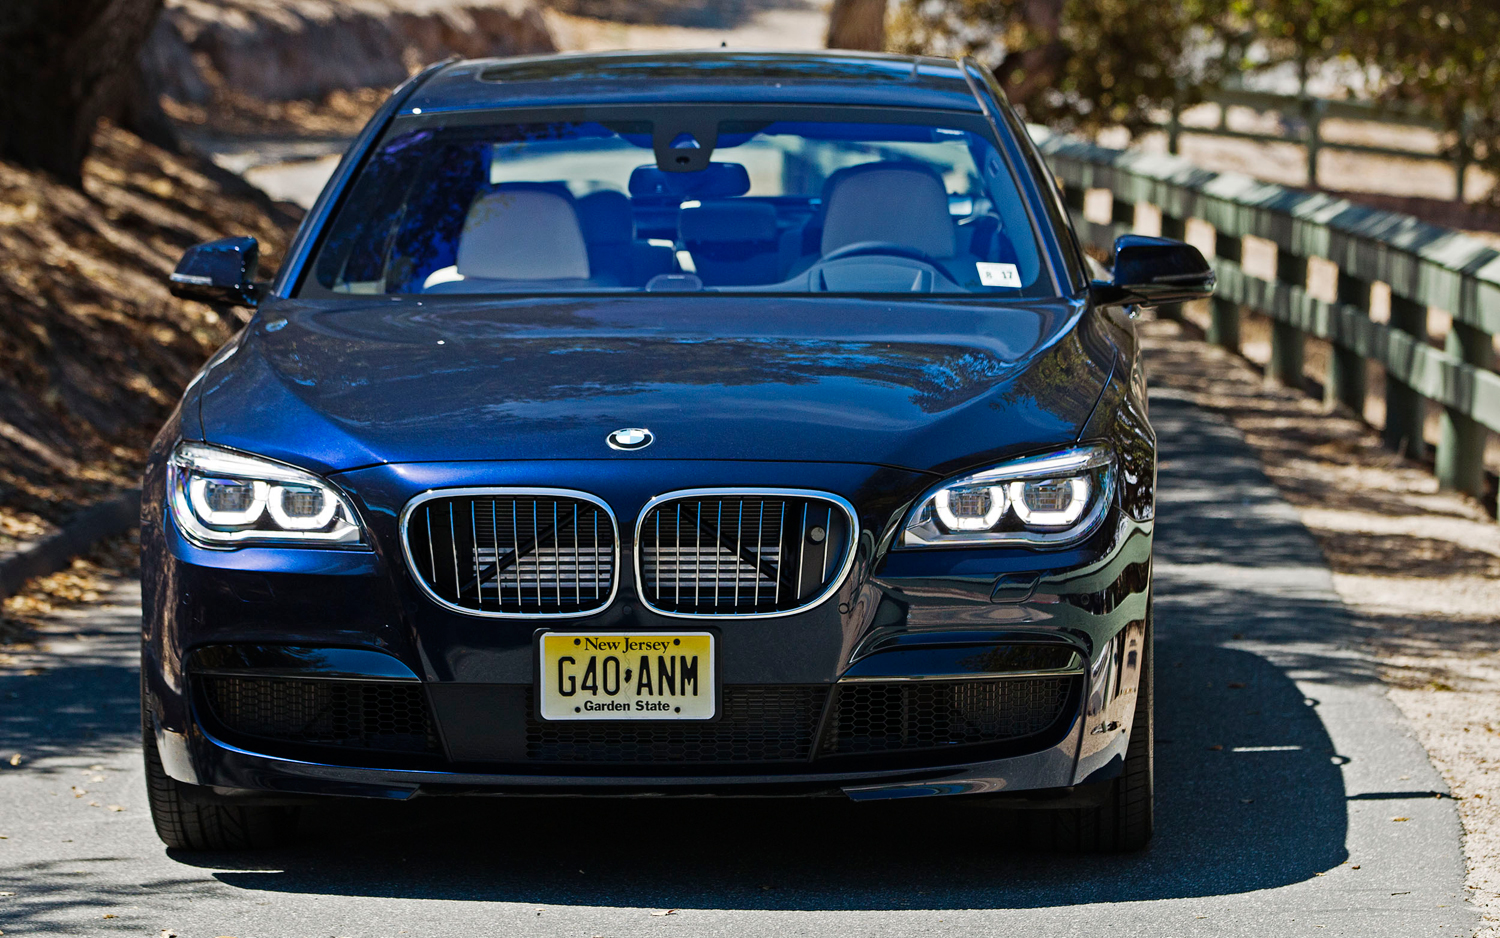 Bmw 750 Alpina Review Amazing Pictures And Images Look At The Car